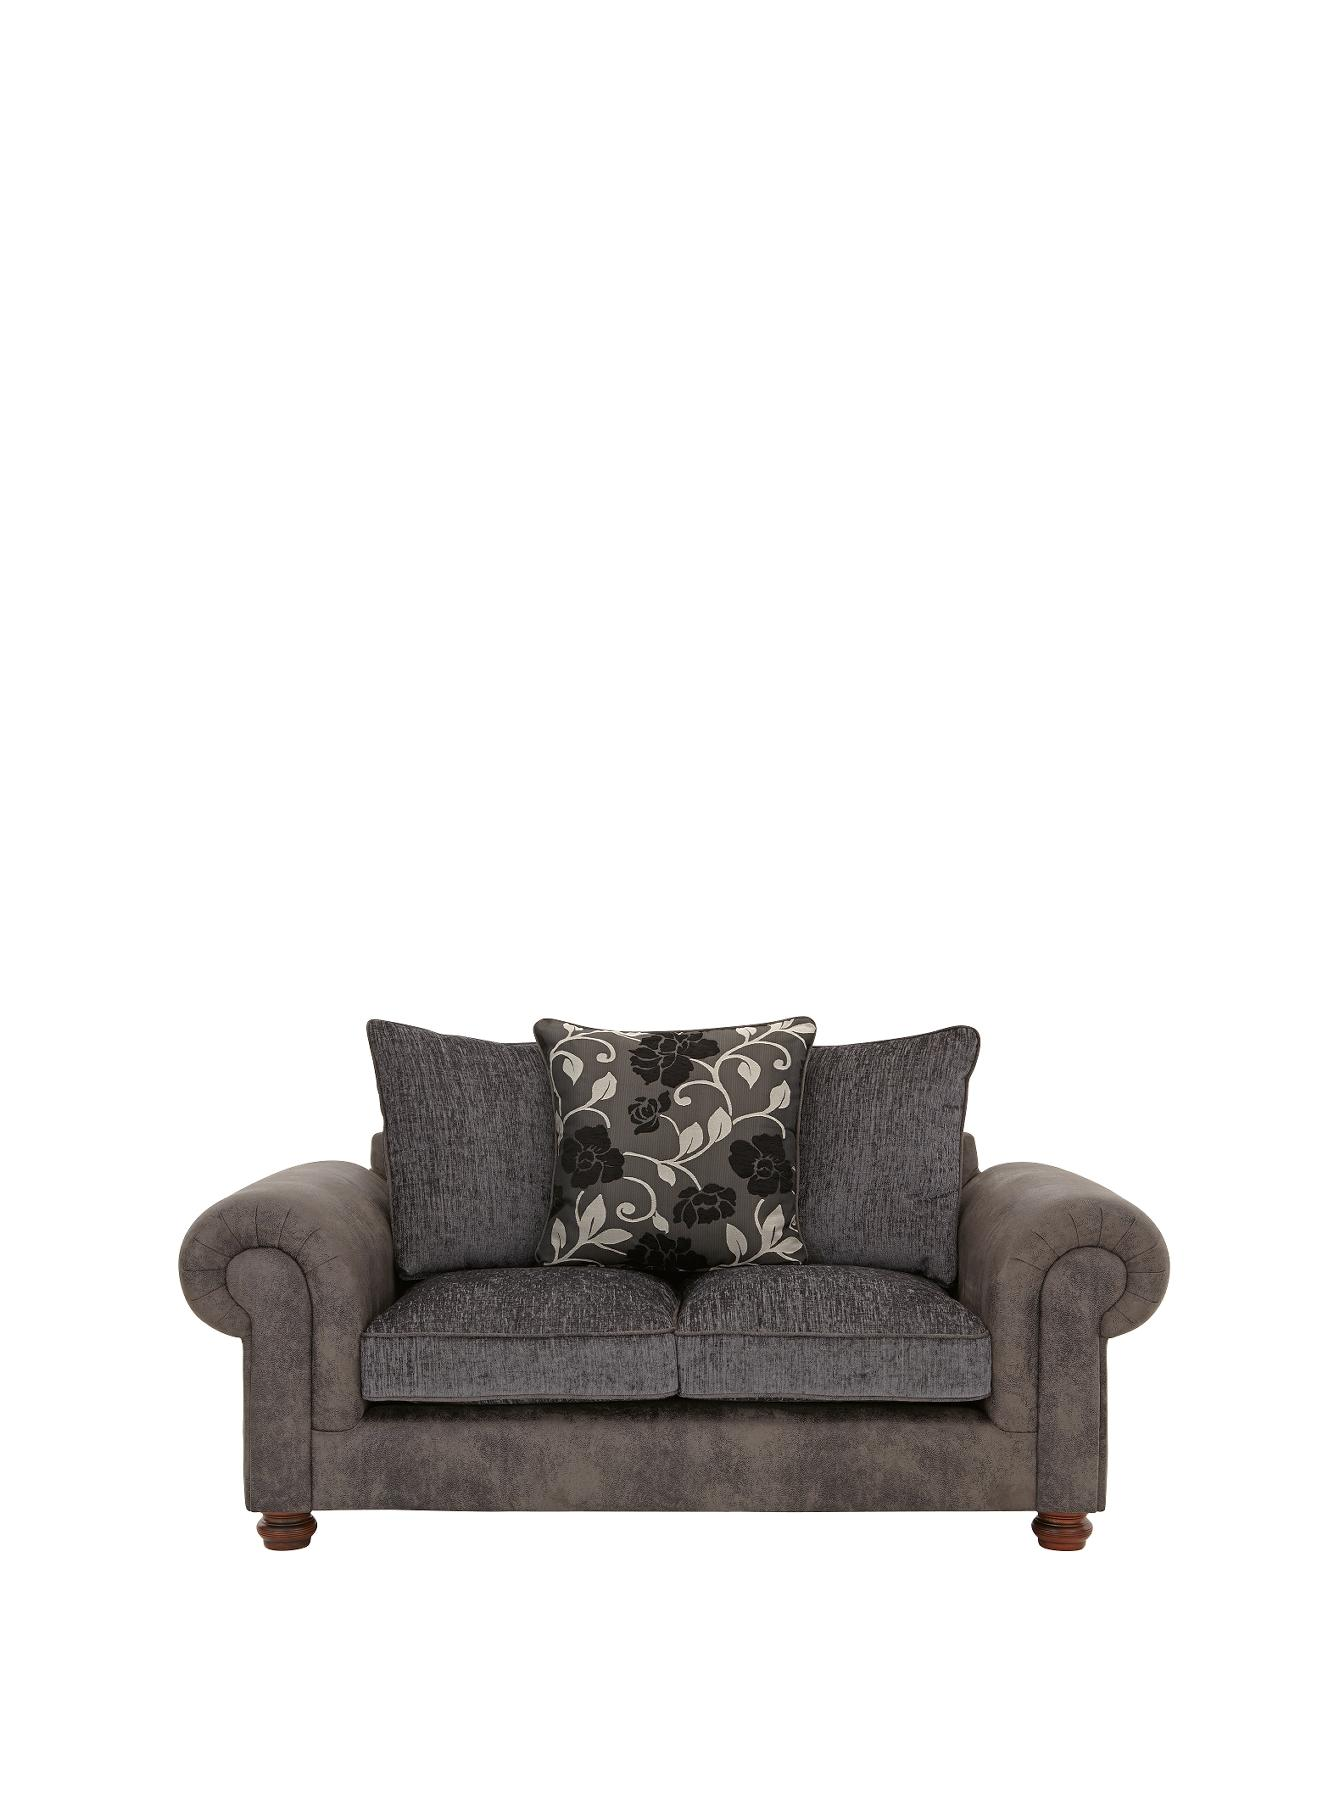 Astley 2-Seater Sofa, Black,Chocolate